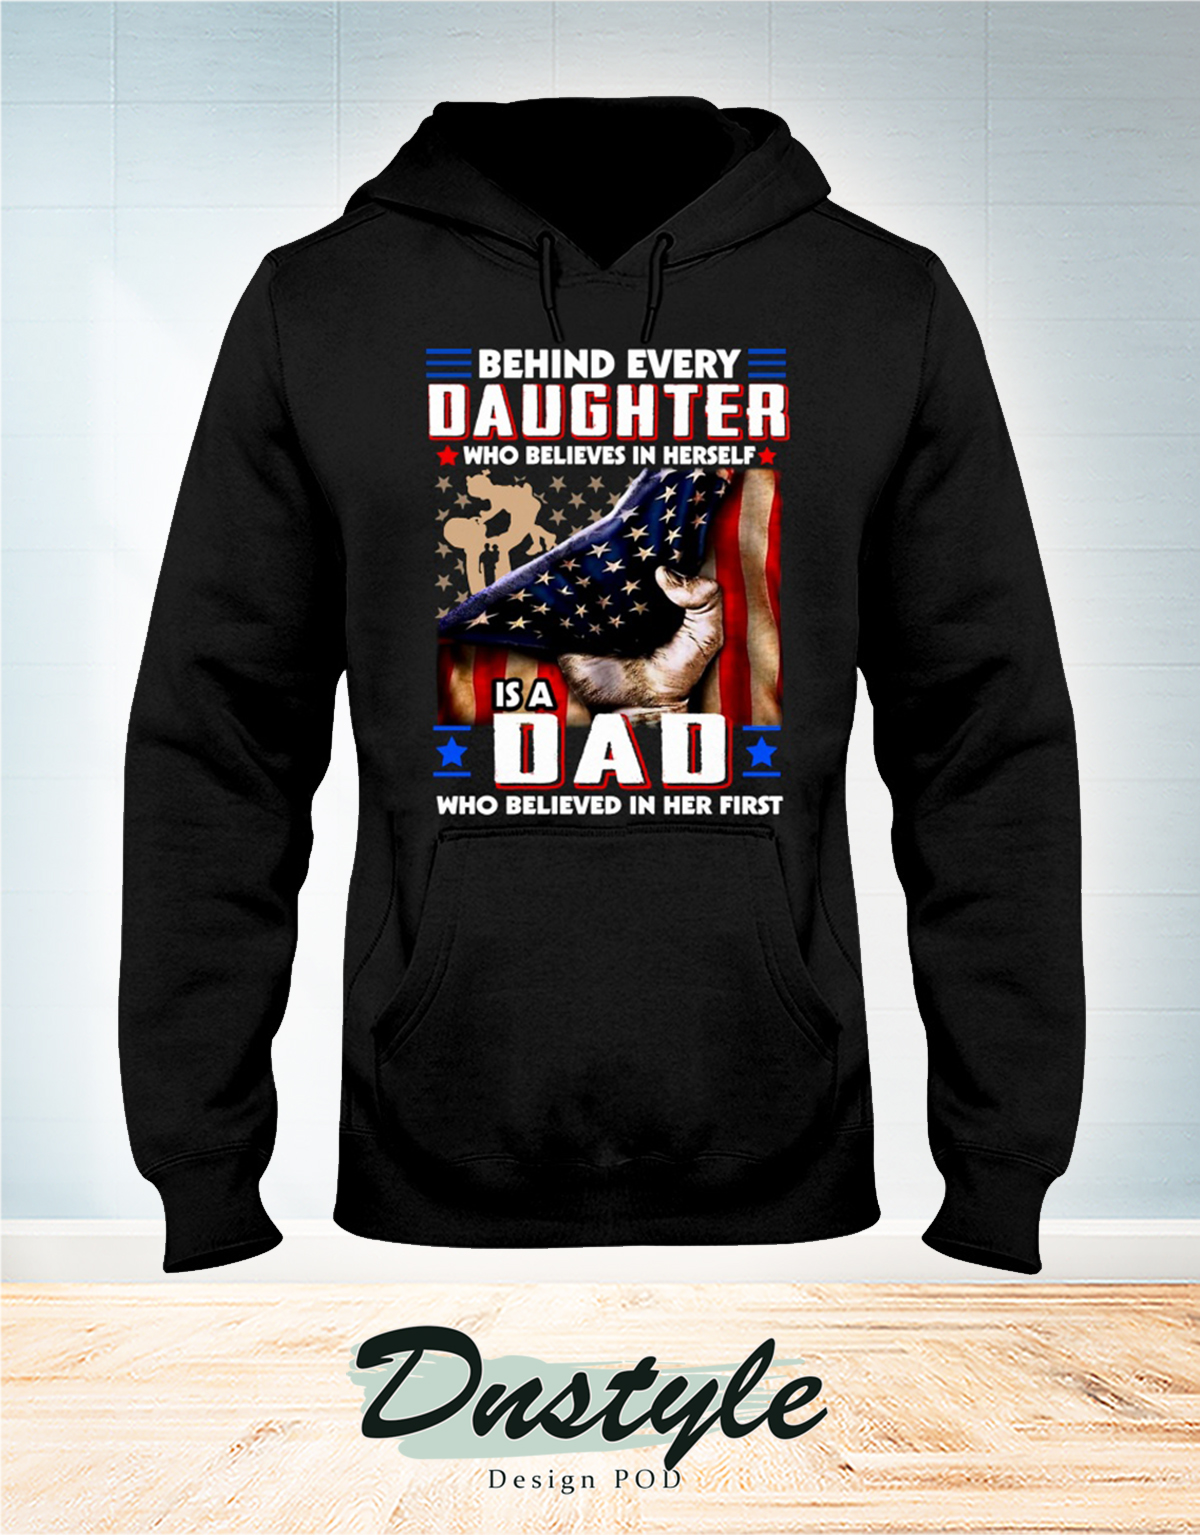 American flag behind every daughter who believes in herself is a dad who believed in her first hoodie